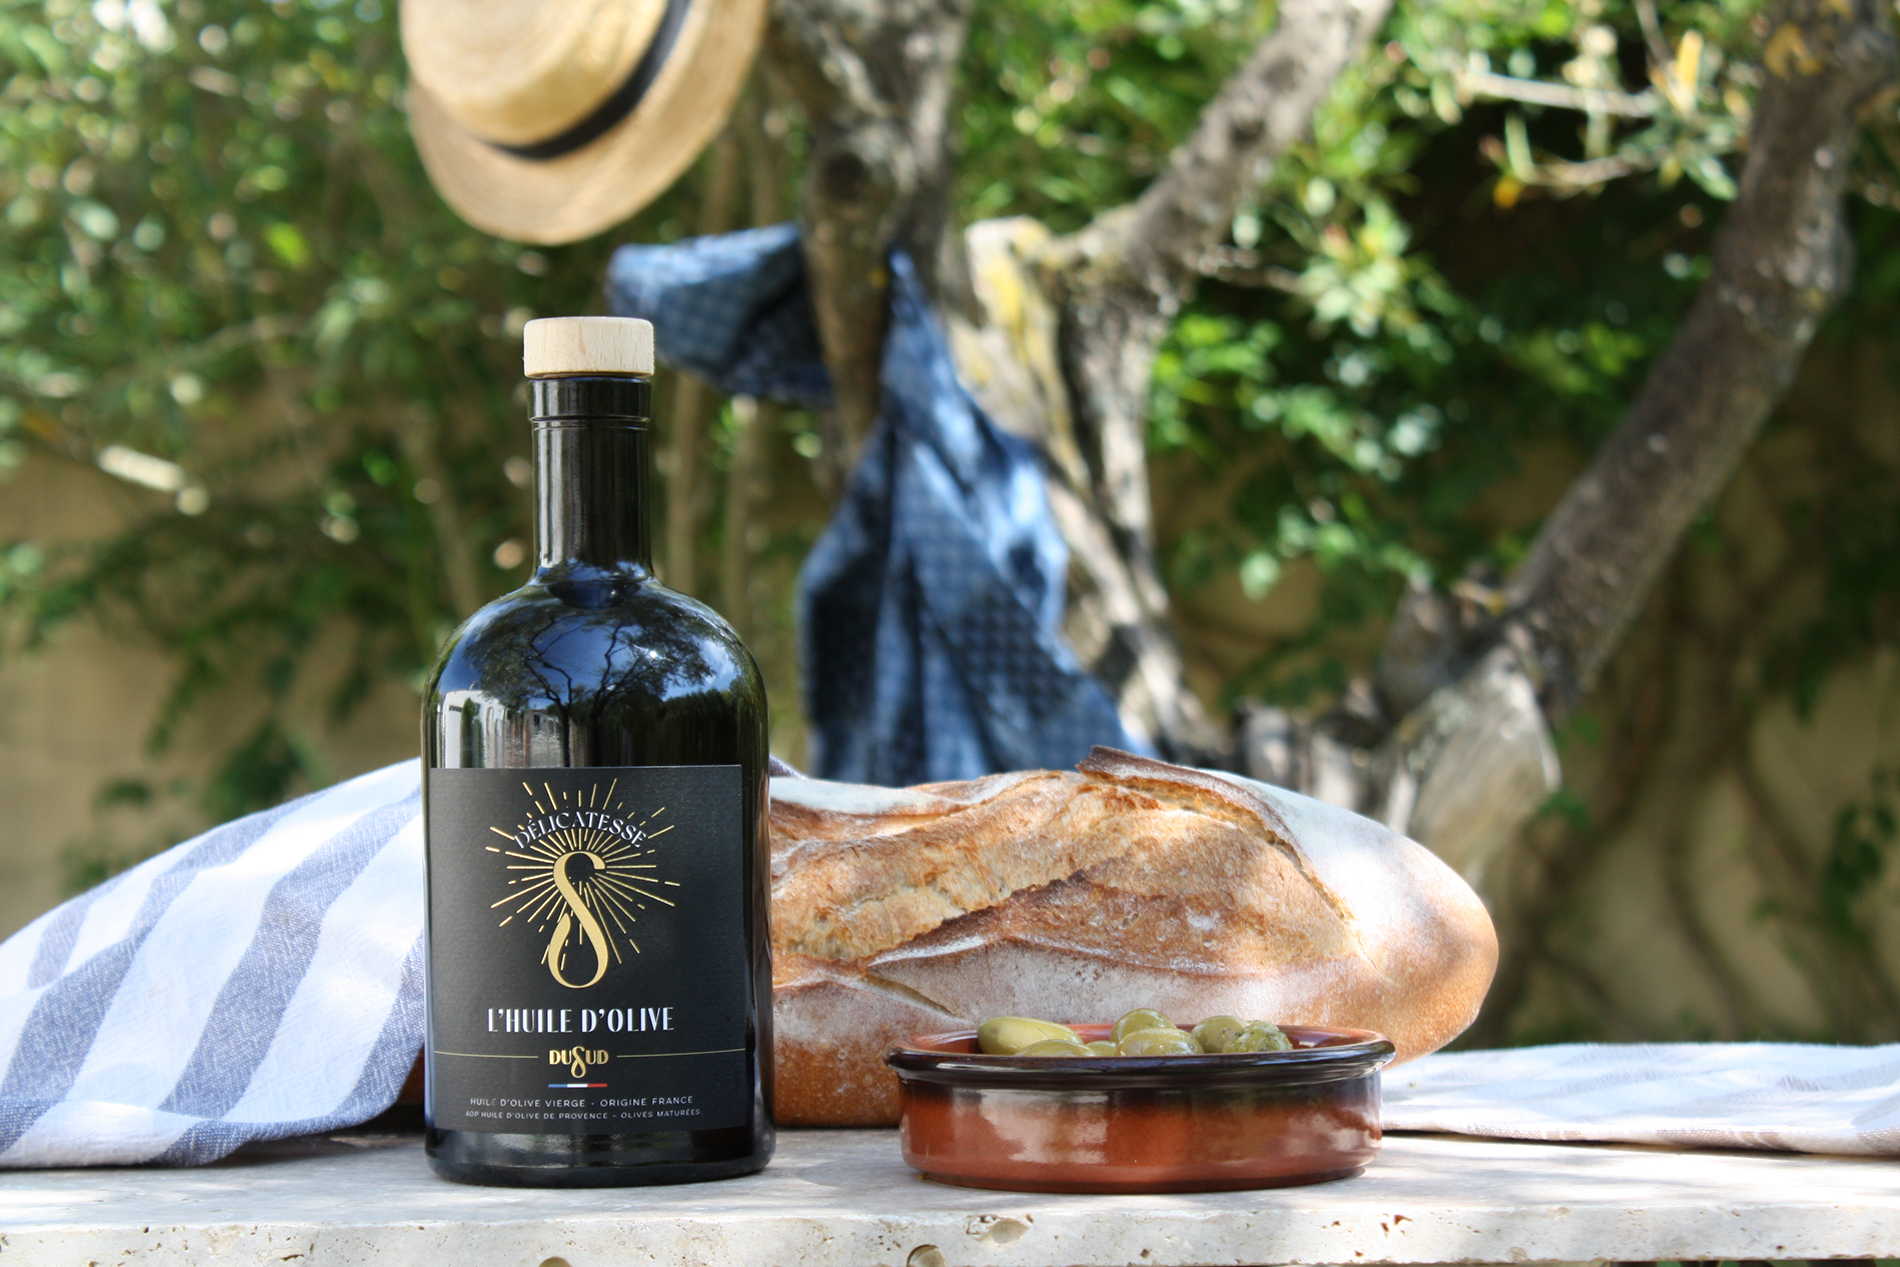 bouteille-packaging-alimentaire-epicerie-fine-huile-olive-degustation